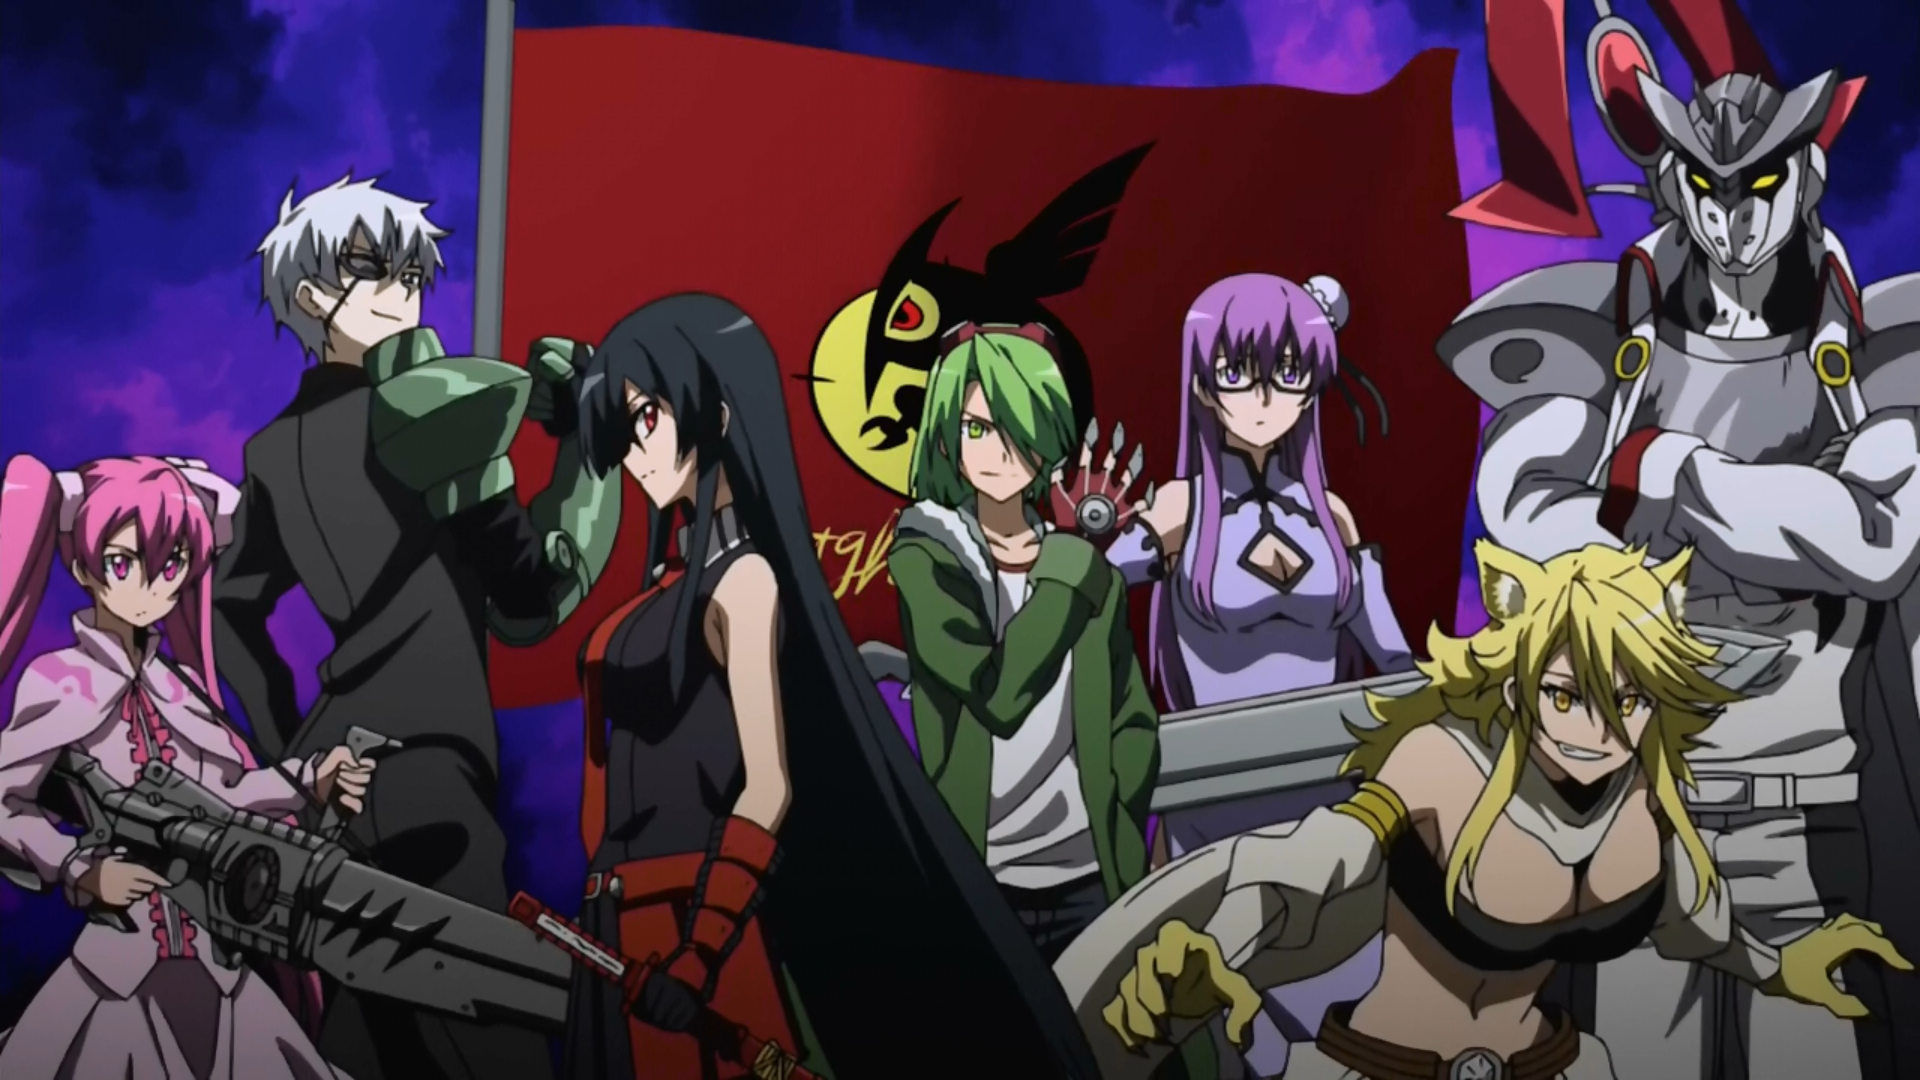 Night Raid Akame Ga Kill VS Phantom Troupe Hunter X